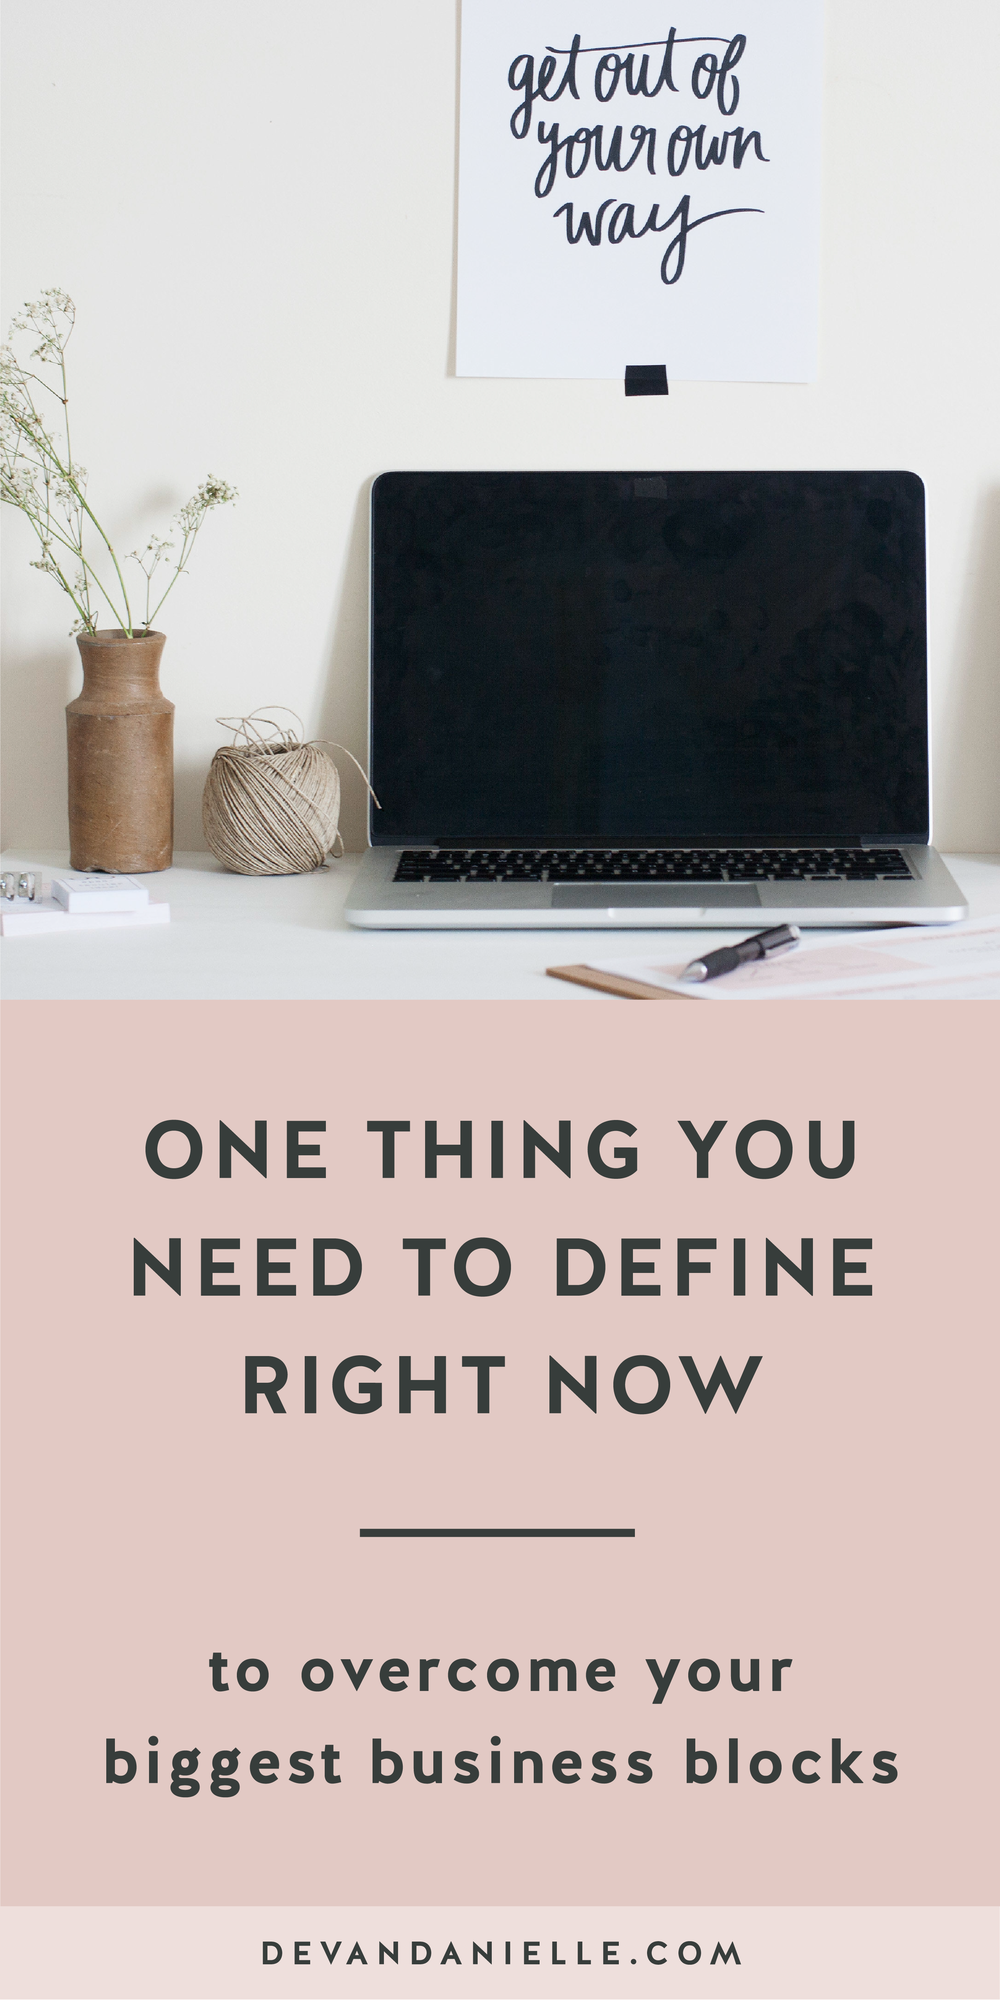 One thing you need to define to overcome your biggest business blocks